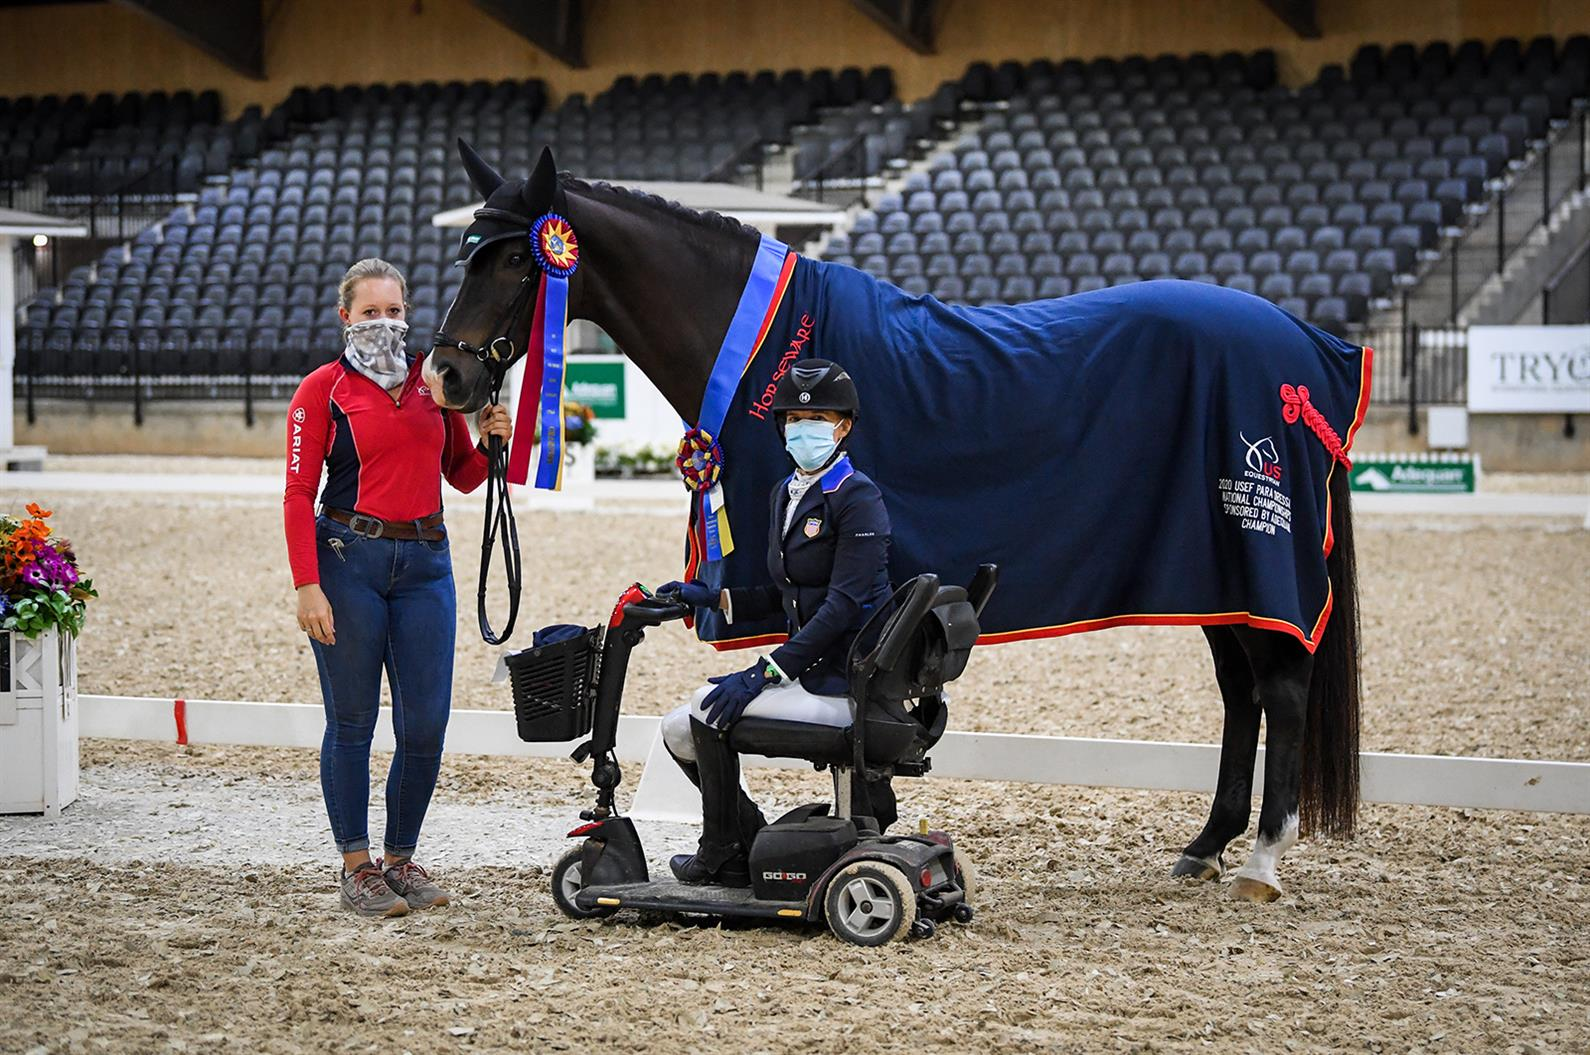 Rebecca Hart posing with El Corona Texel with the champion ribbons and cooler from the Adequan/USEF Para Dressage National Championship